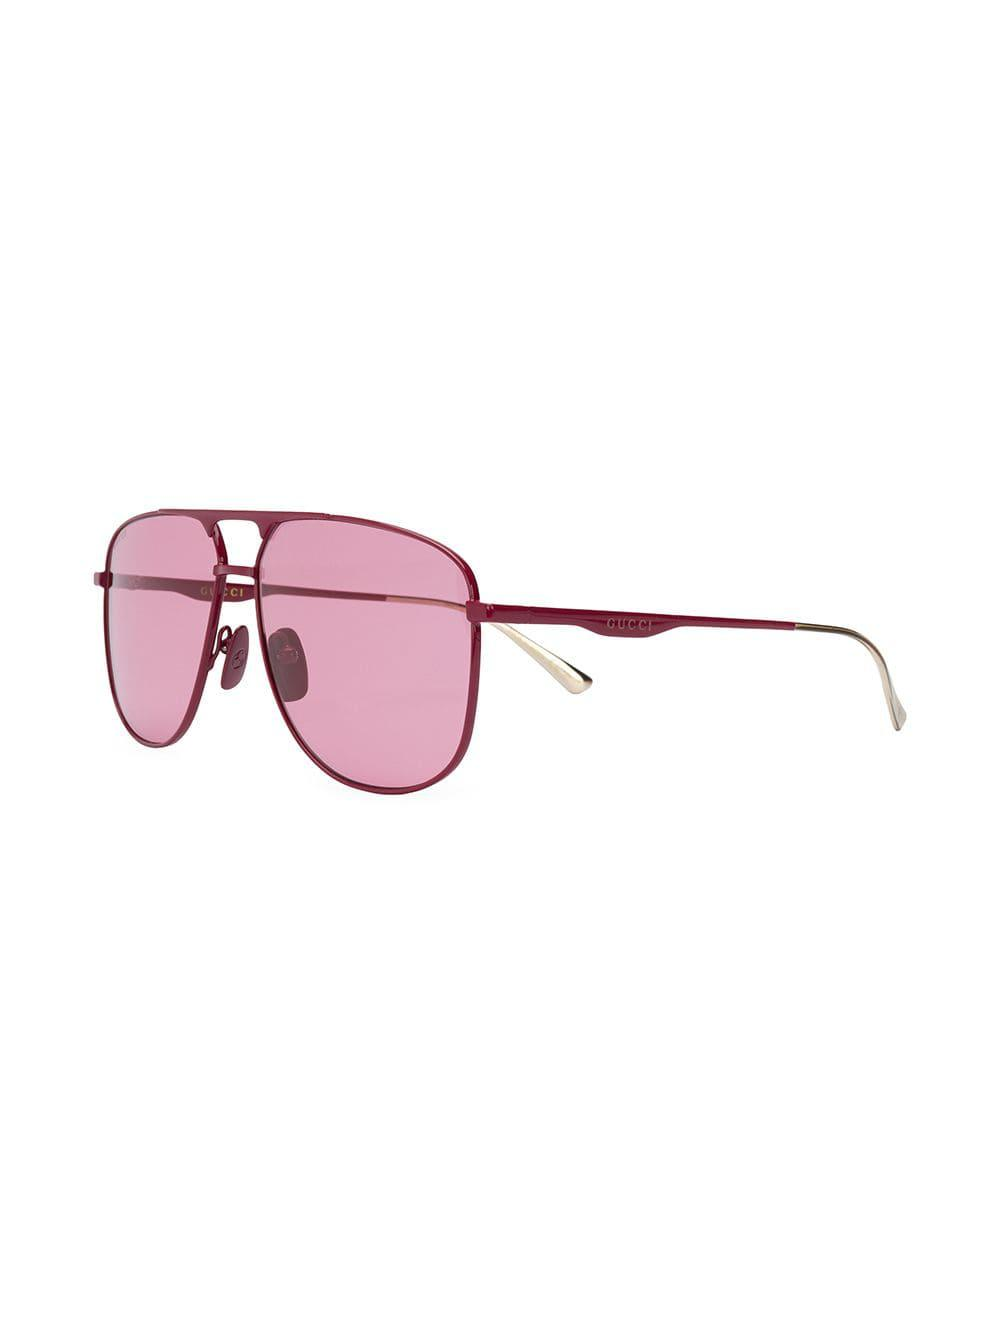 236fef2419c Lyst - Gucci Aviator Frame Sunglasses in Pink for Men